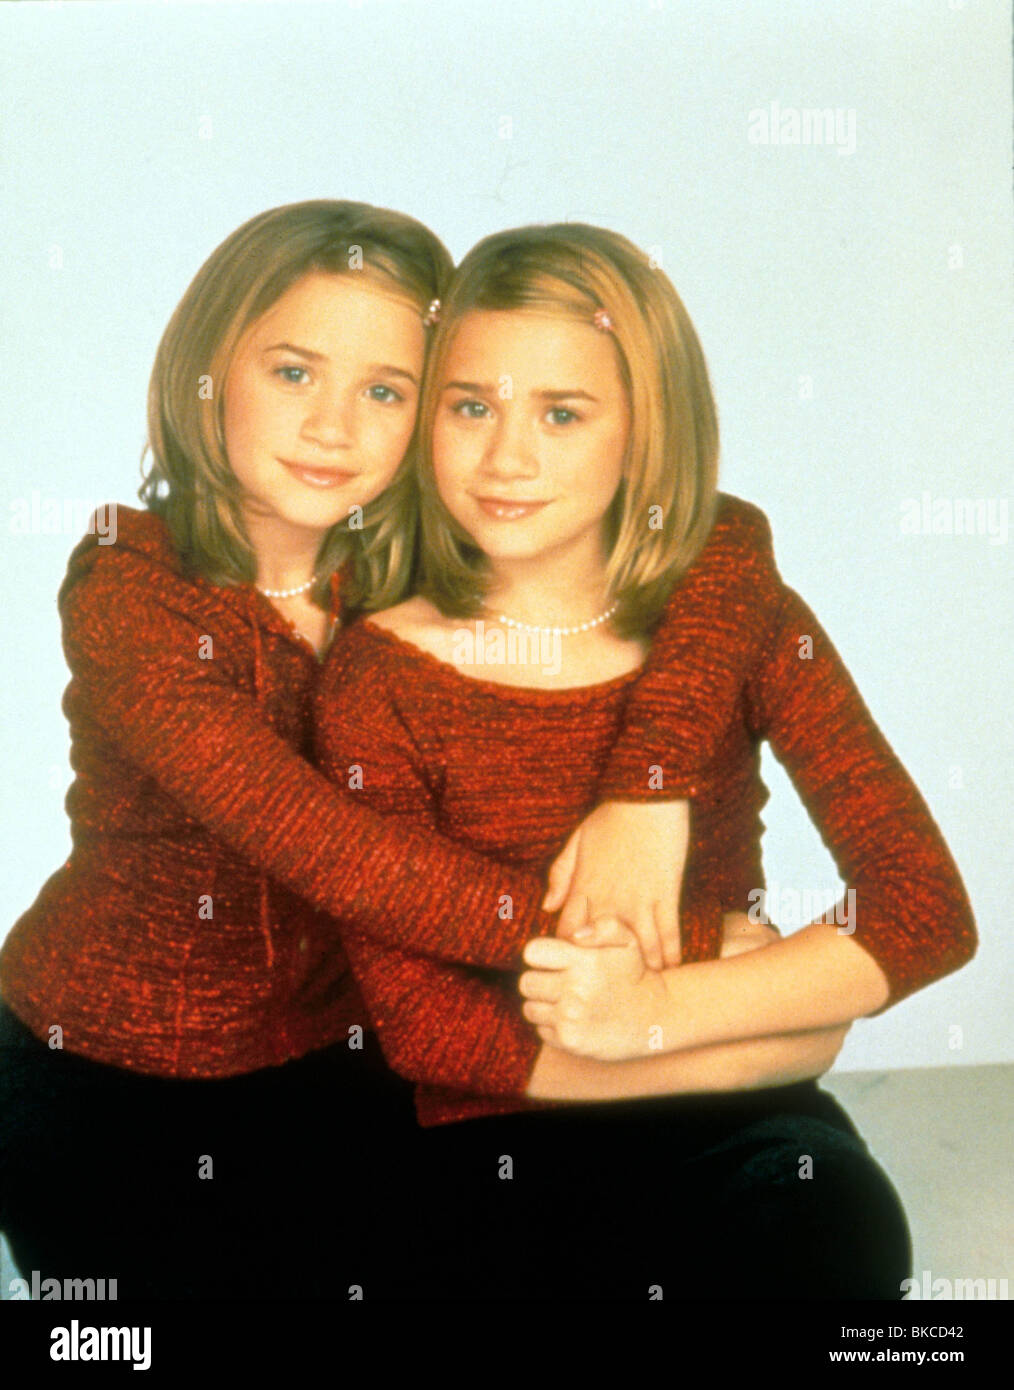 Variant Mary kate olsen and ashley olsen movies